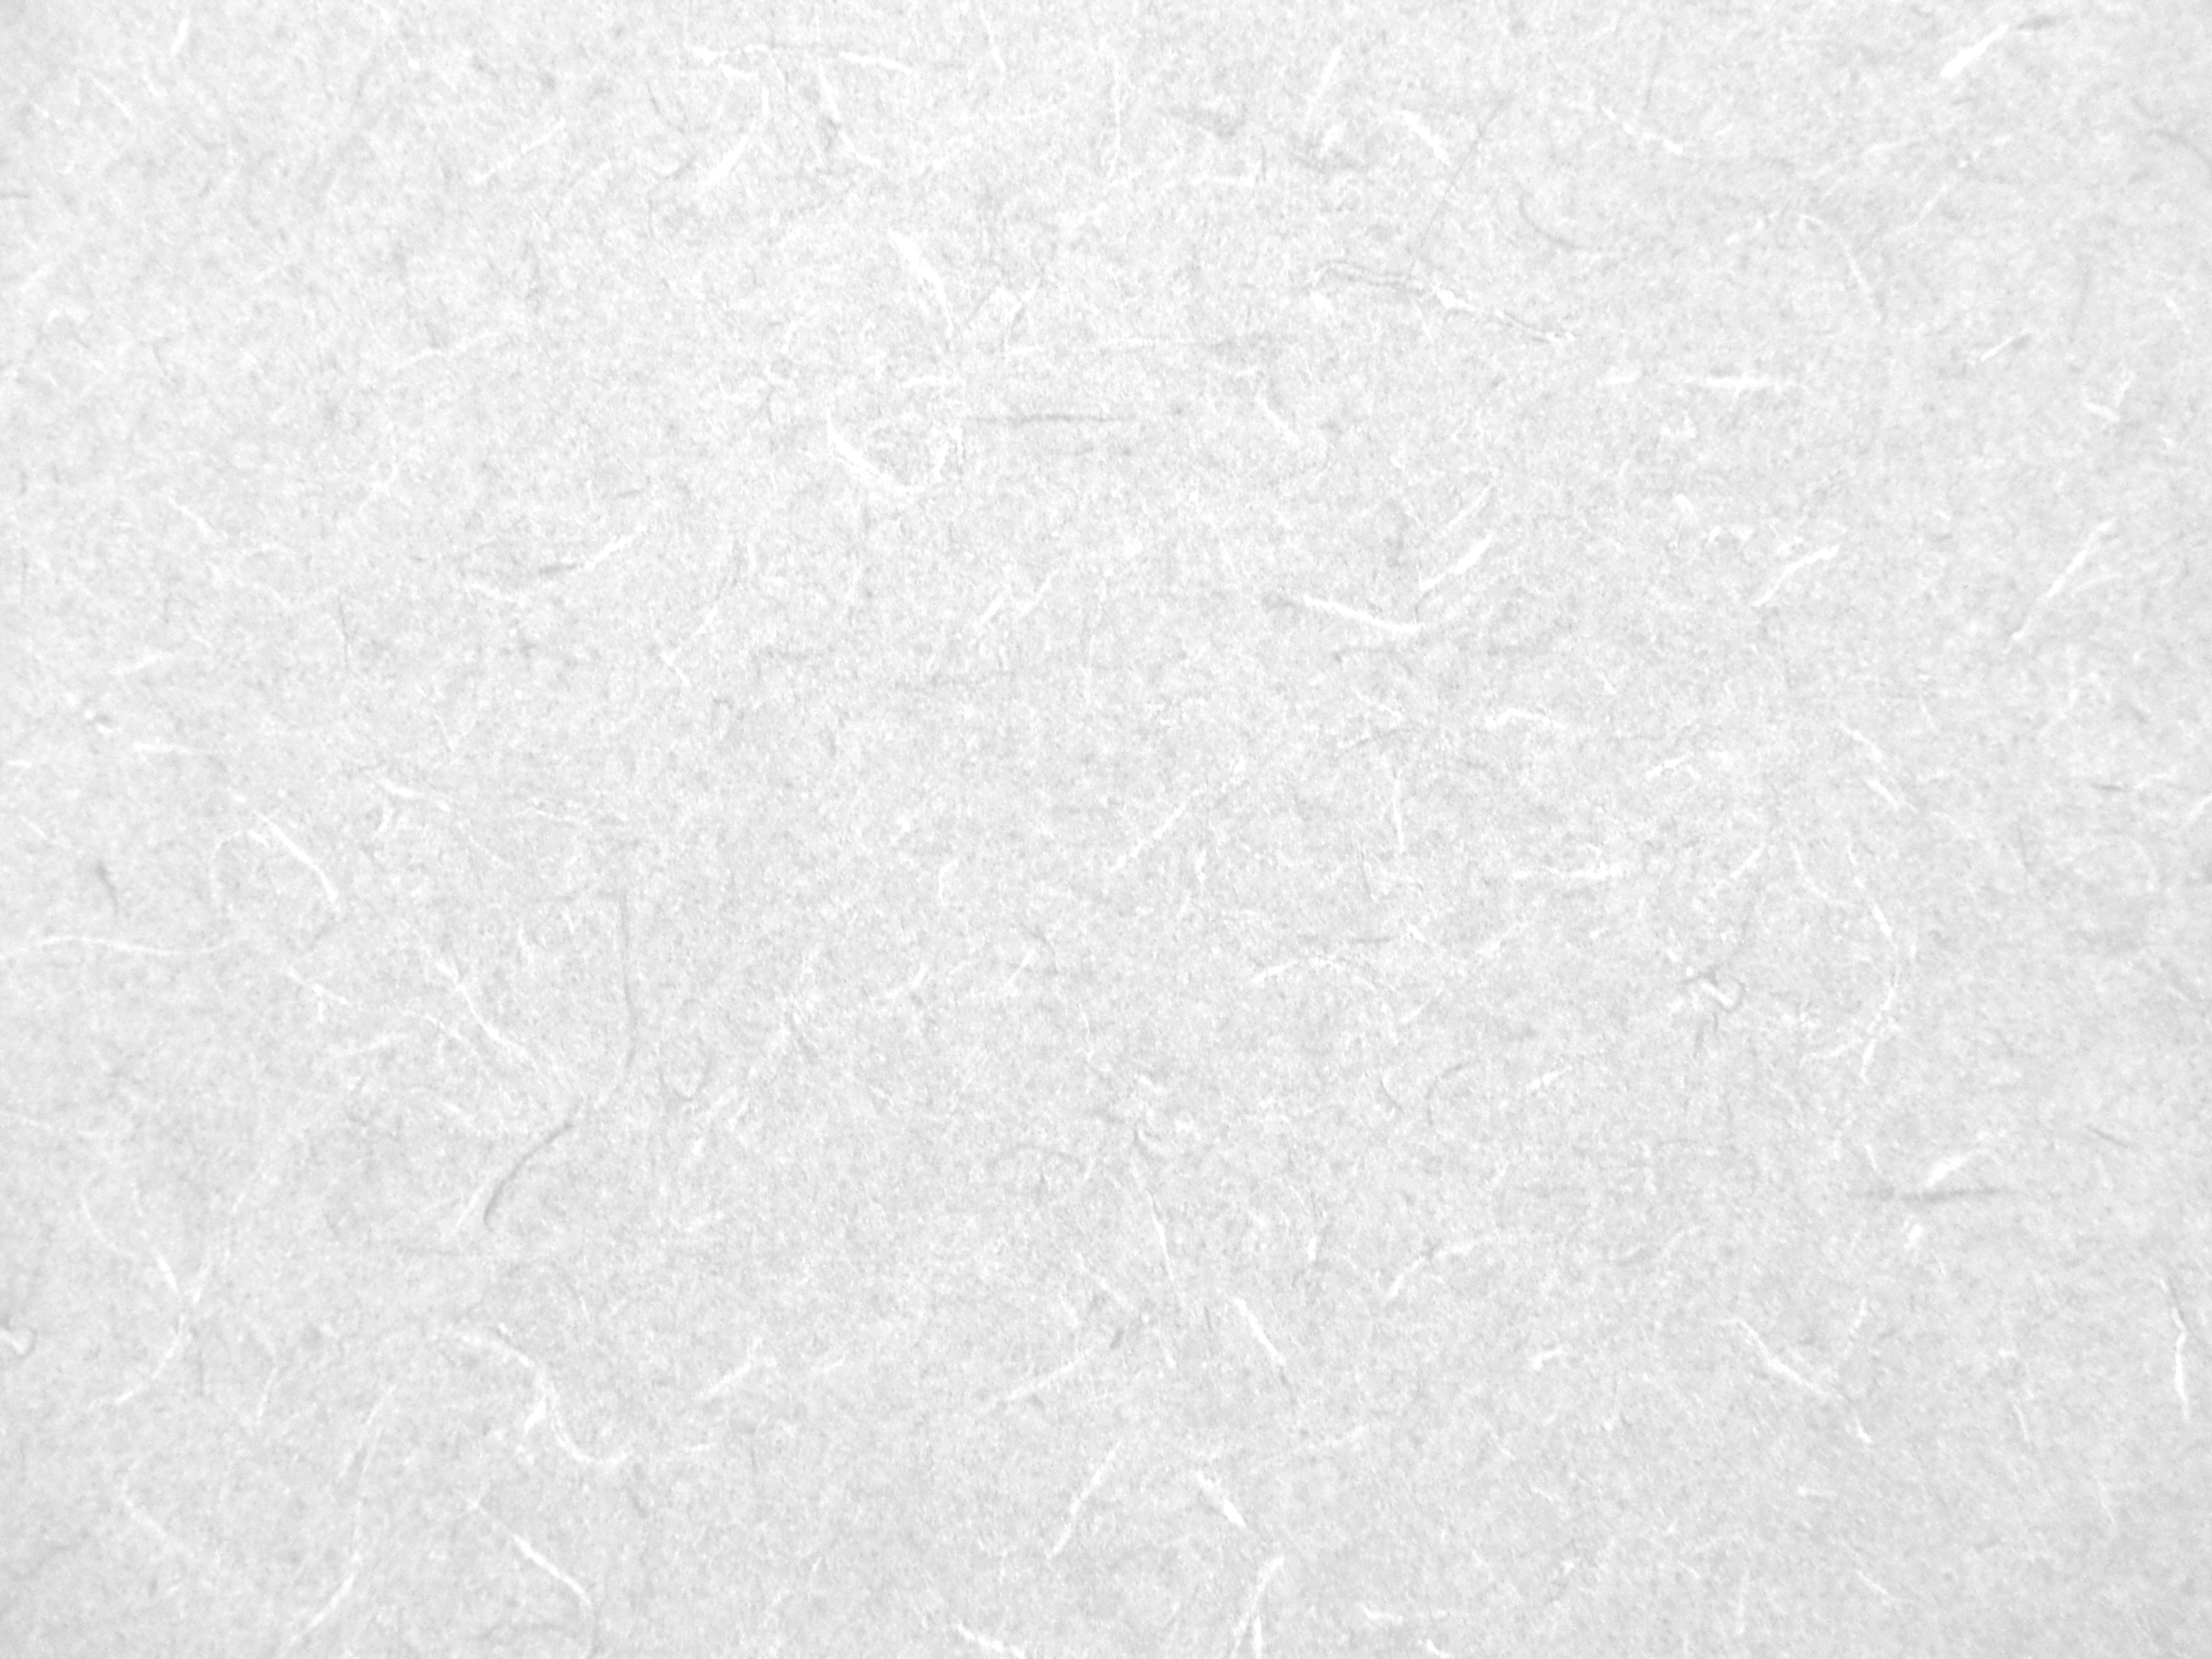 White Texture Background Pattern Images #10544